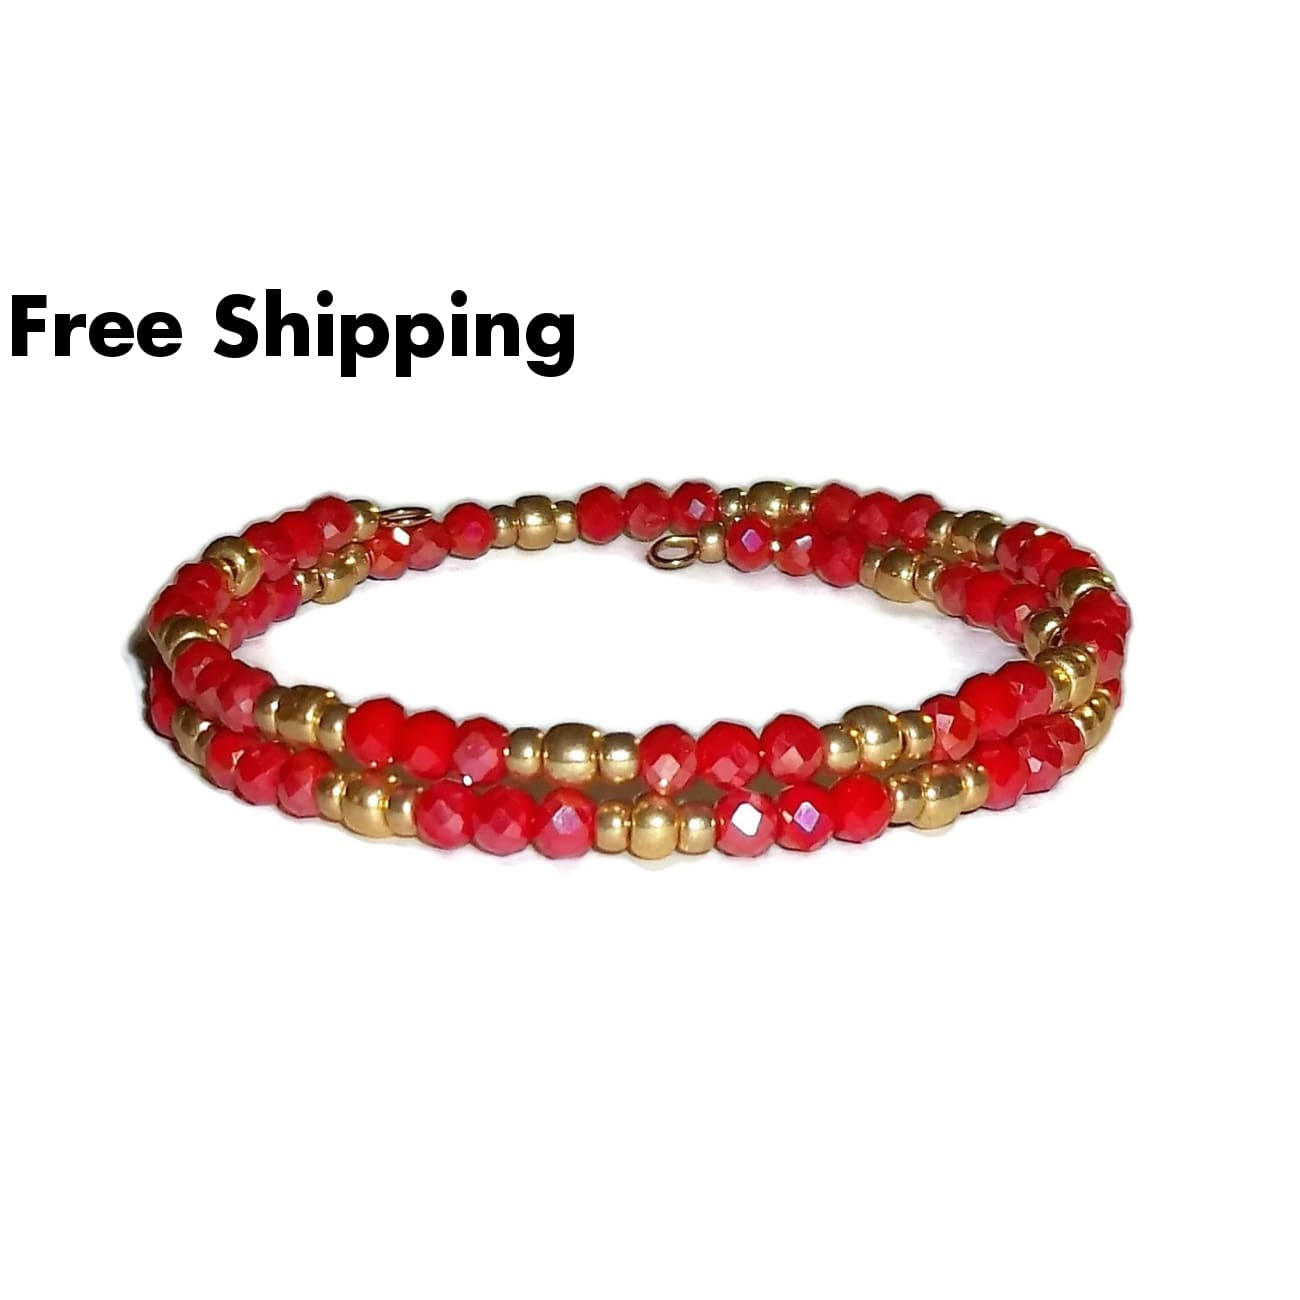 Shimmering Red Opaque Swarovski Crystals & Gold Glass Bead Artisan Crafted Stackables Bracelet (S-M) - New Arrival